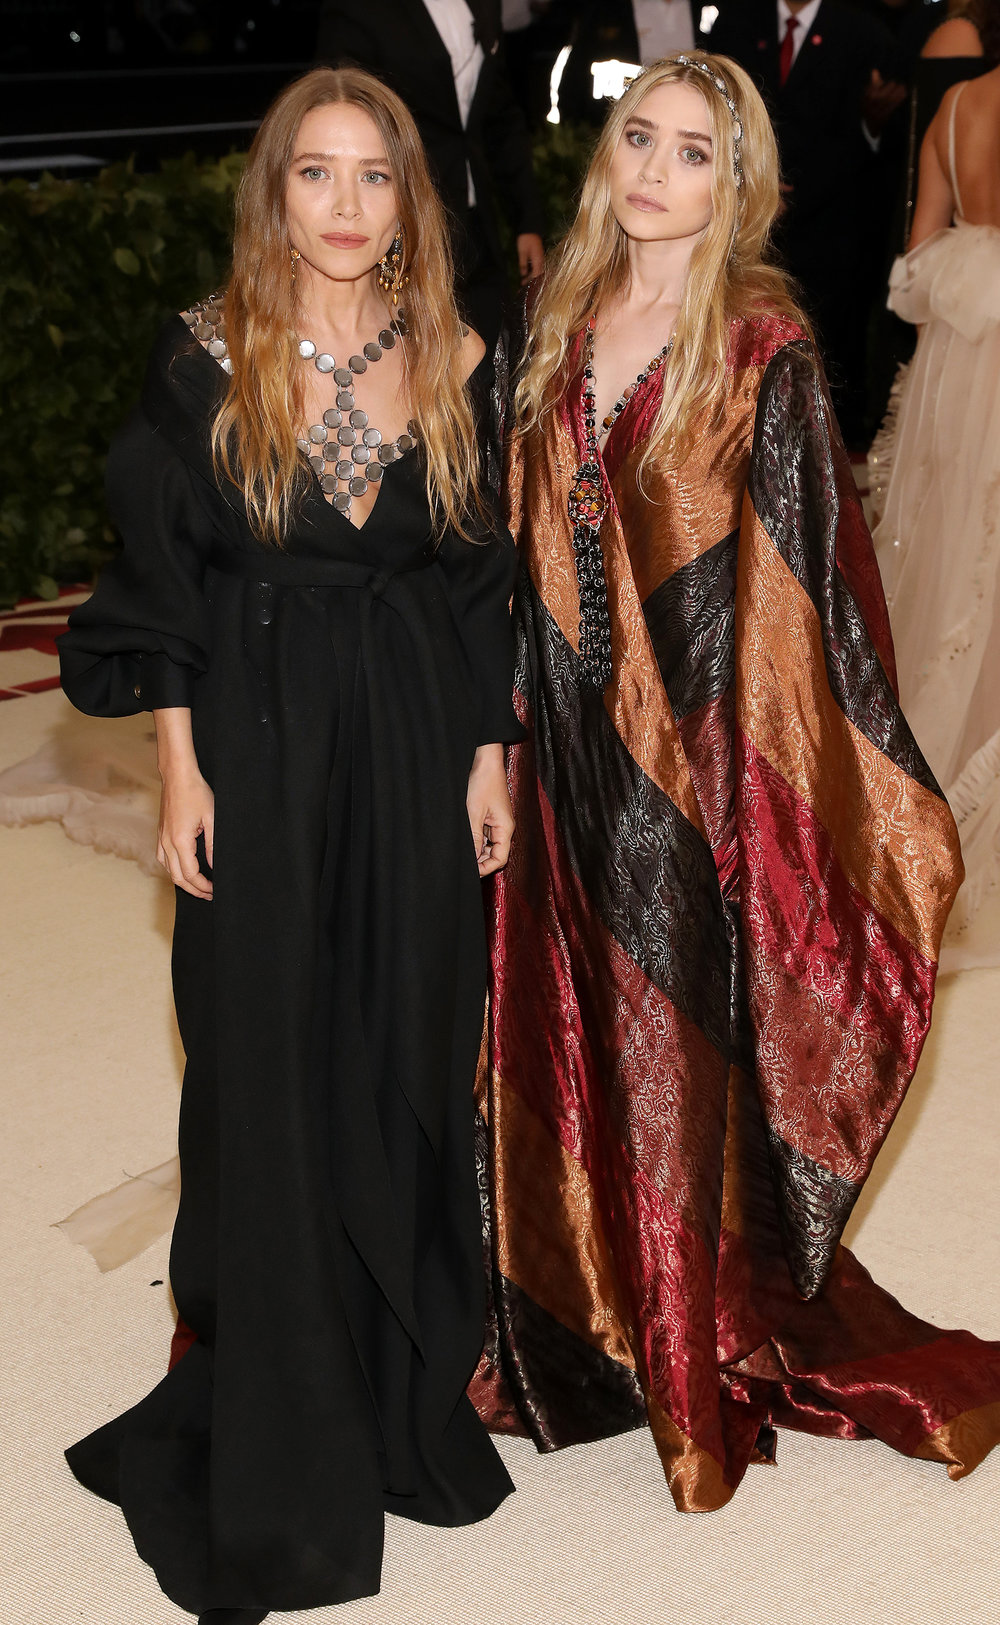 6. MARY-KATE & ASHLEY OLSEN